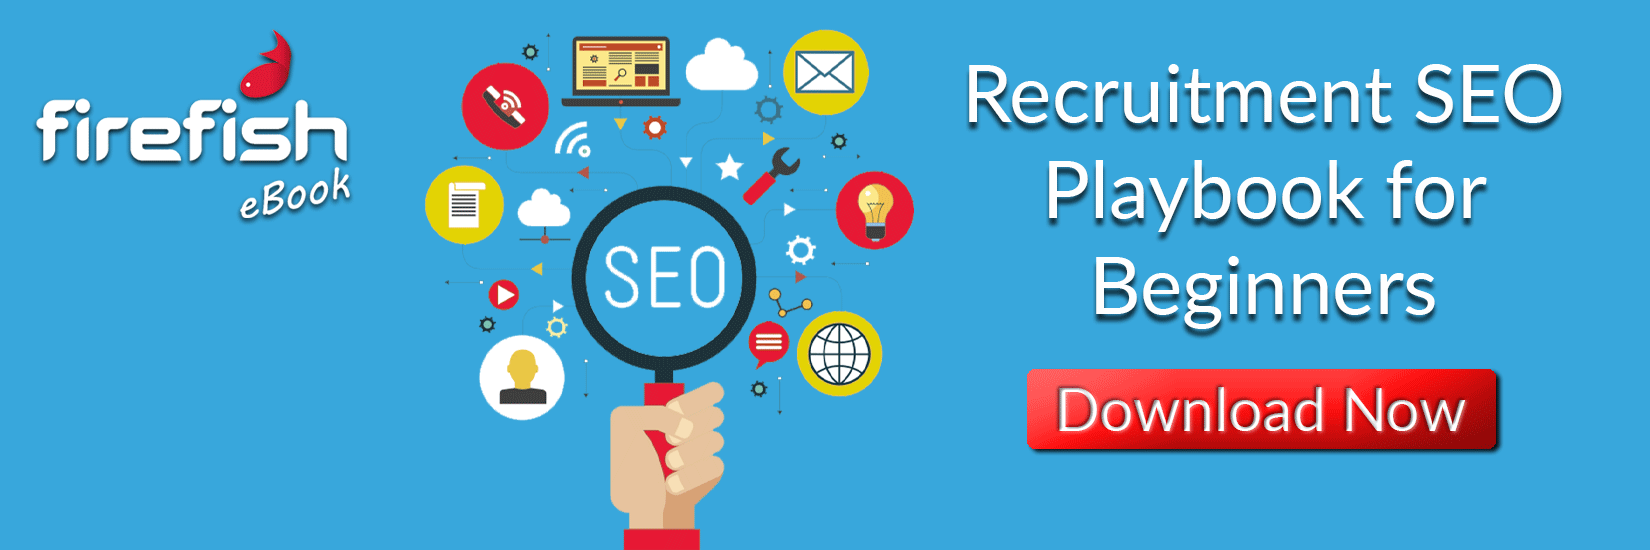 Recruitment Agency SEO for Beginners